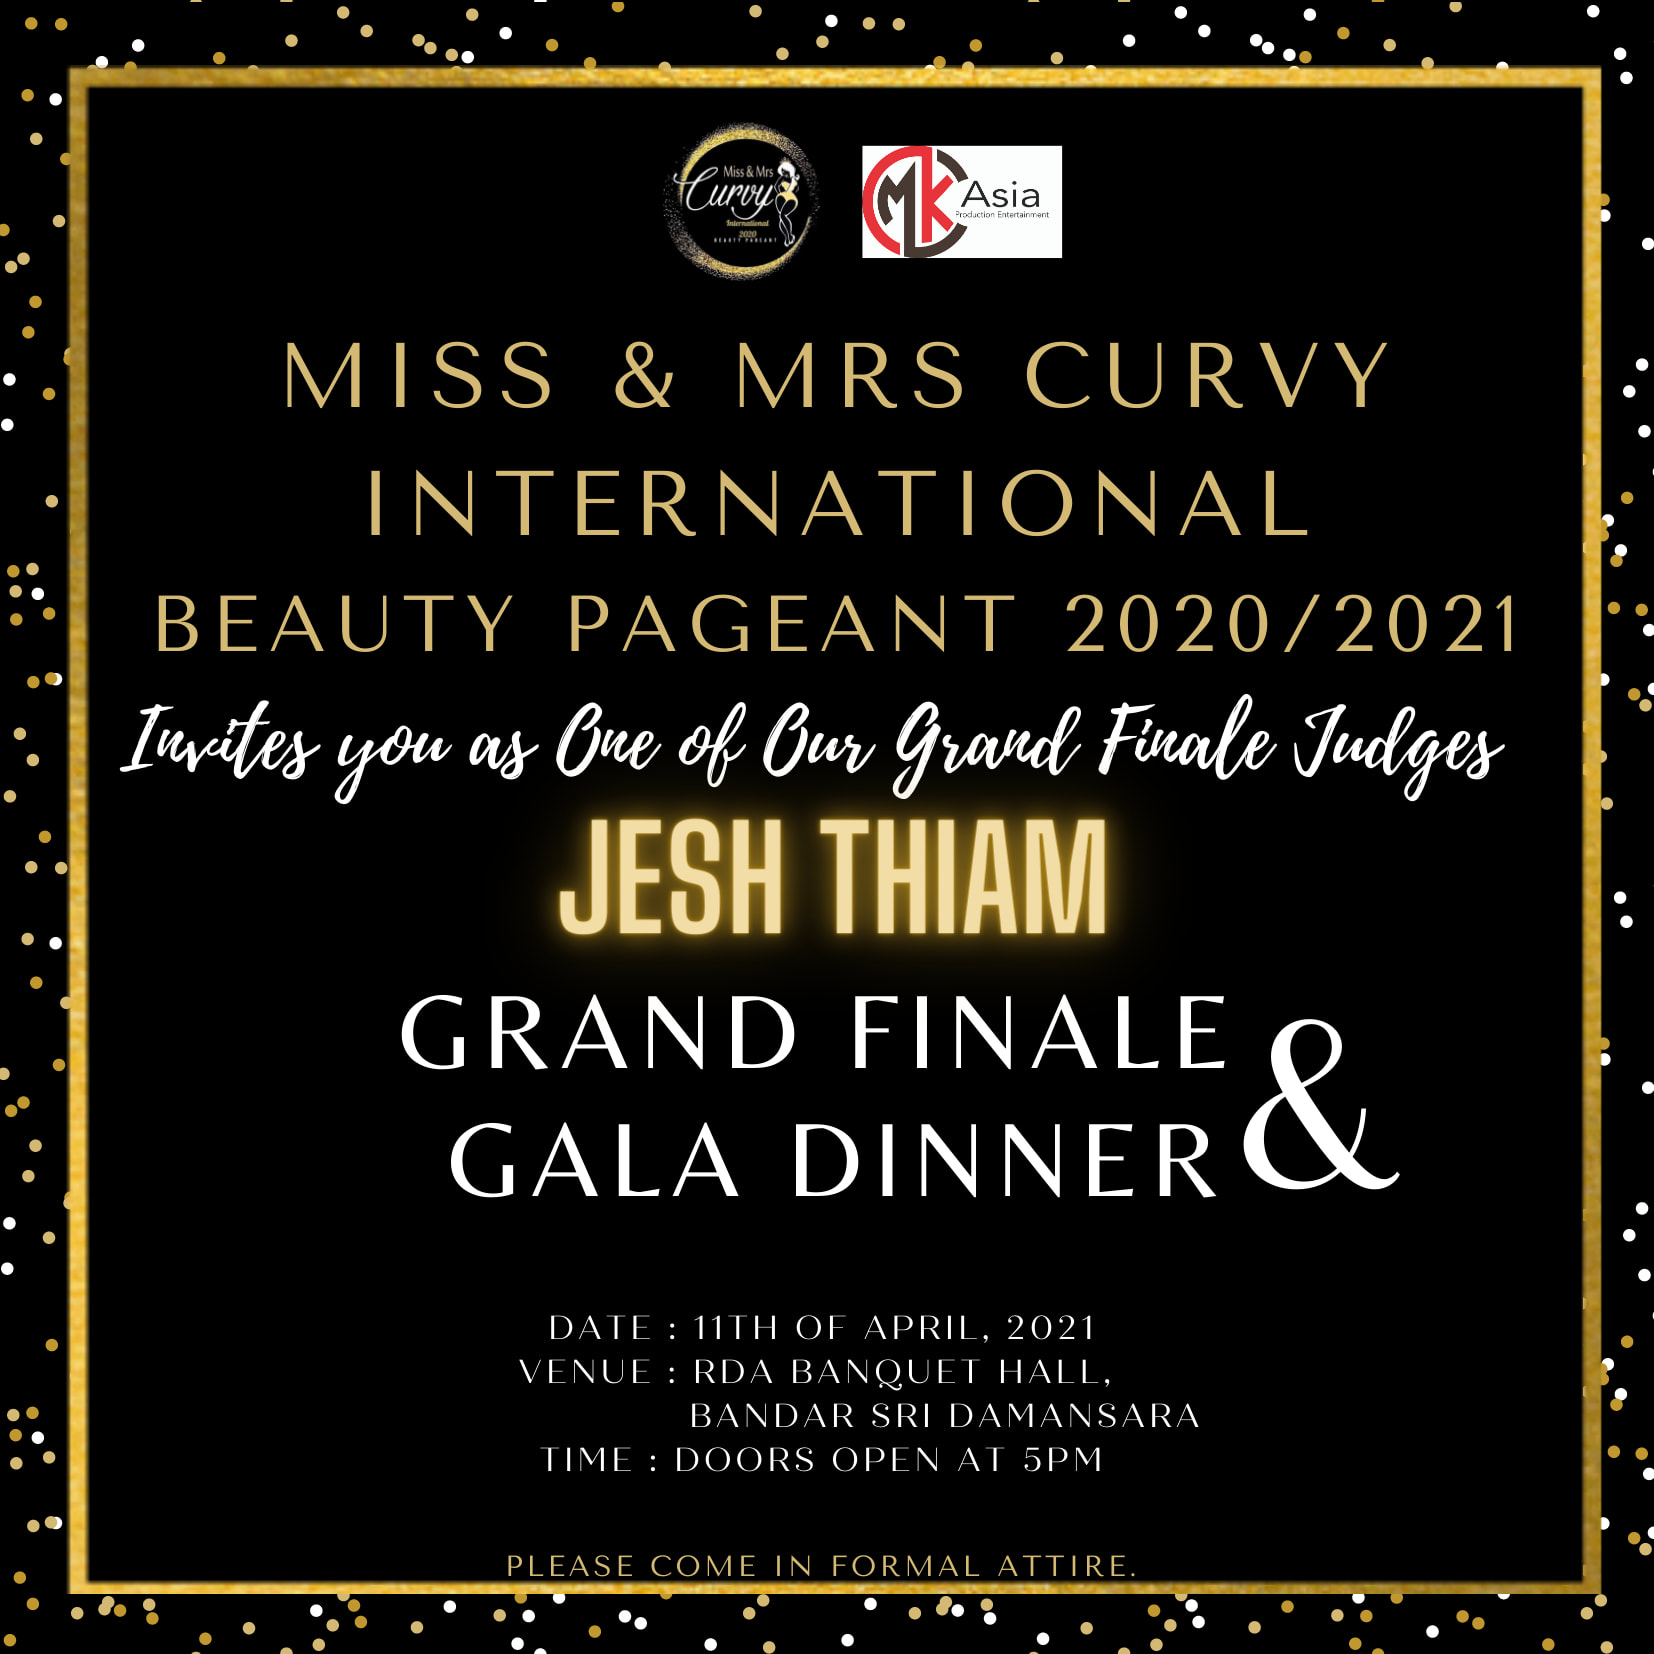 We are happy to announce that bookd! will be supporting Miss and Mrs Curvy Inter…